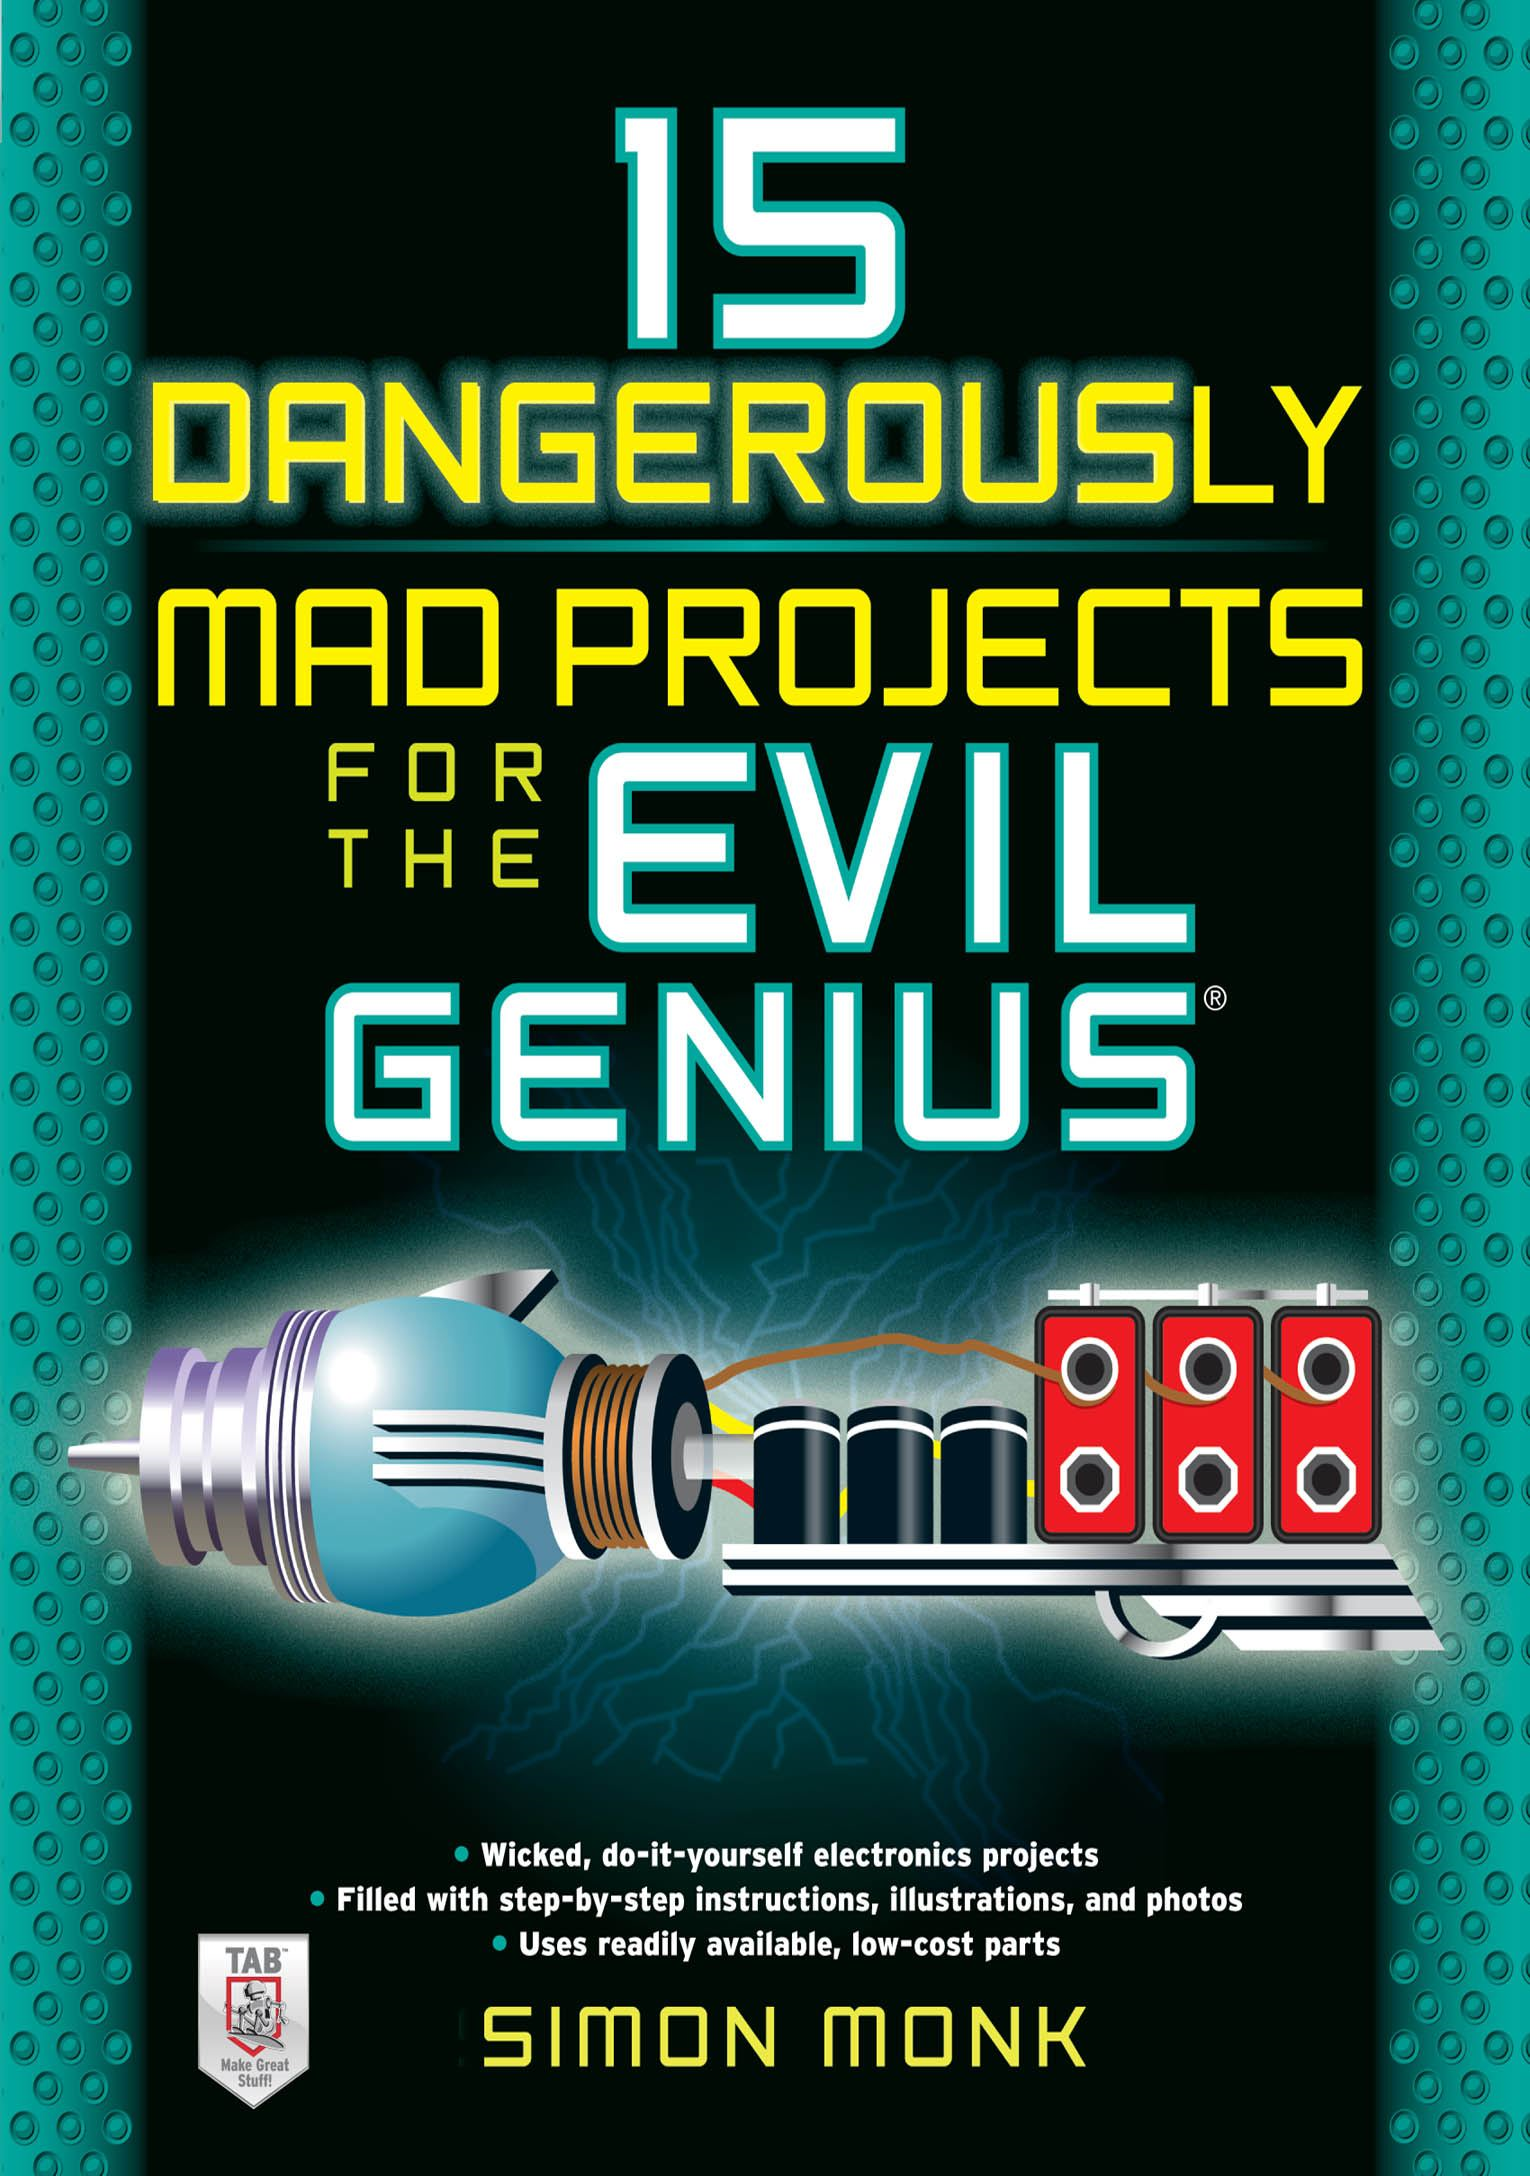 15 Dangerously Mad Projects for the Evil Genius By: Simon Monk